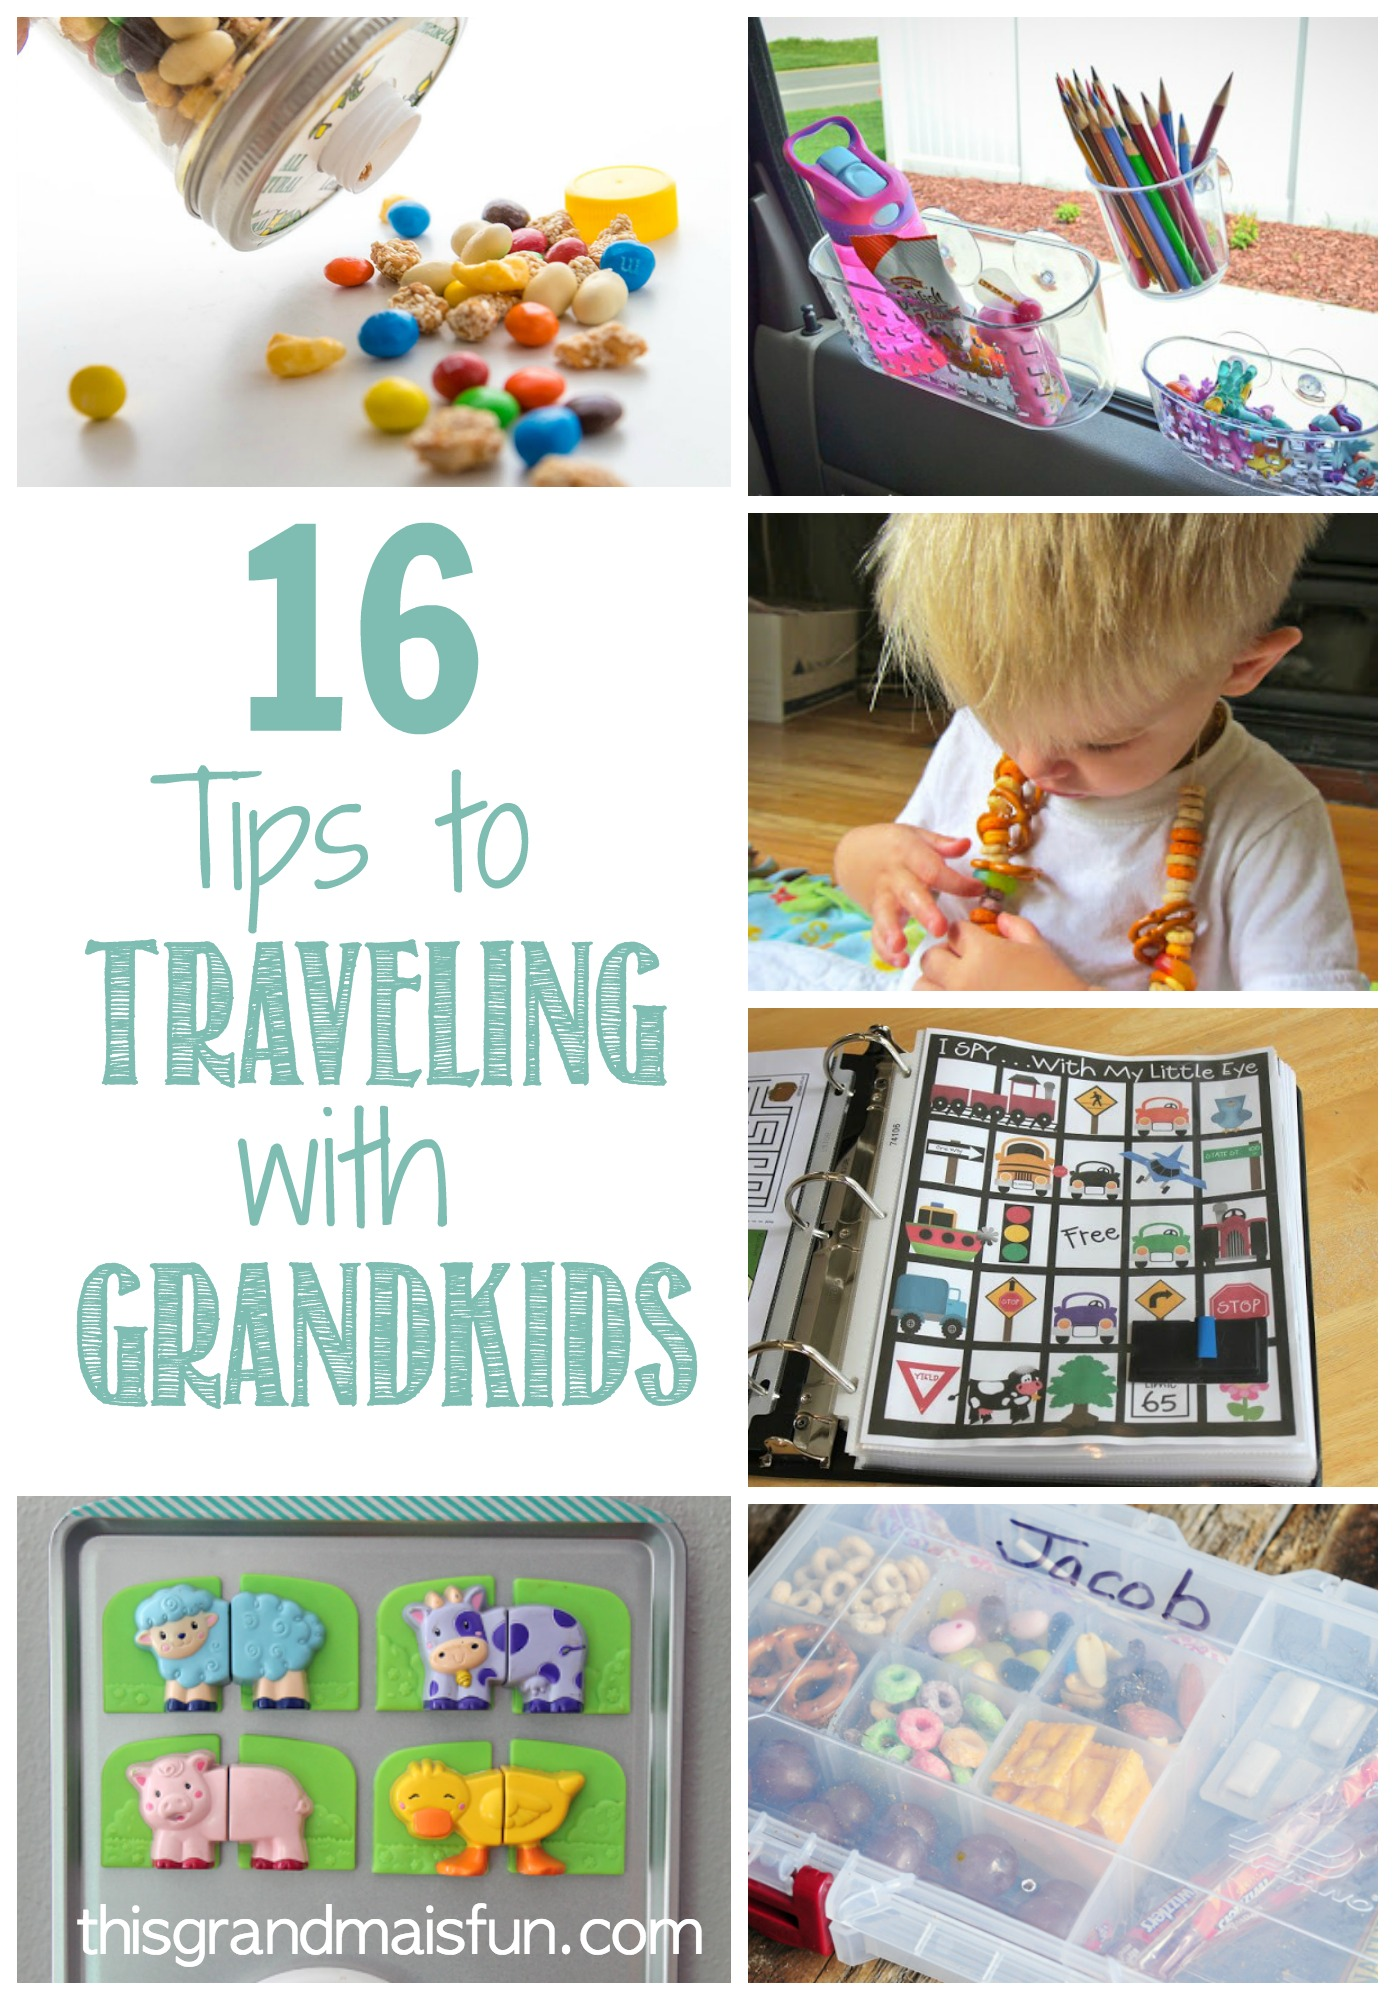 tips-to-traveling-with-grandkids